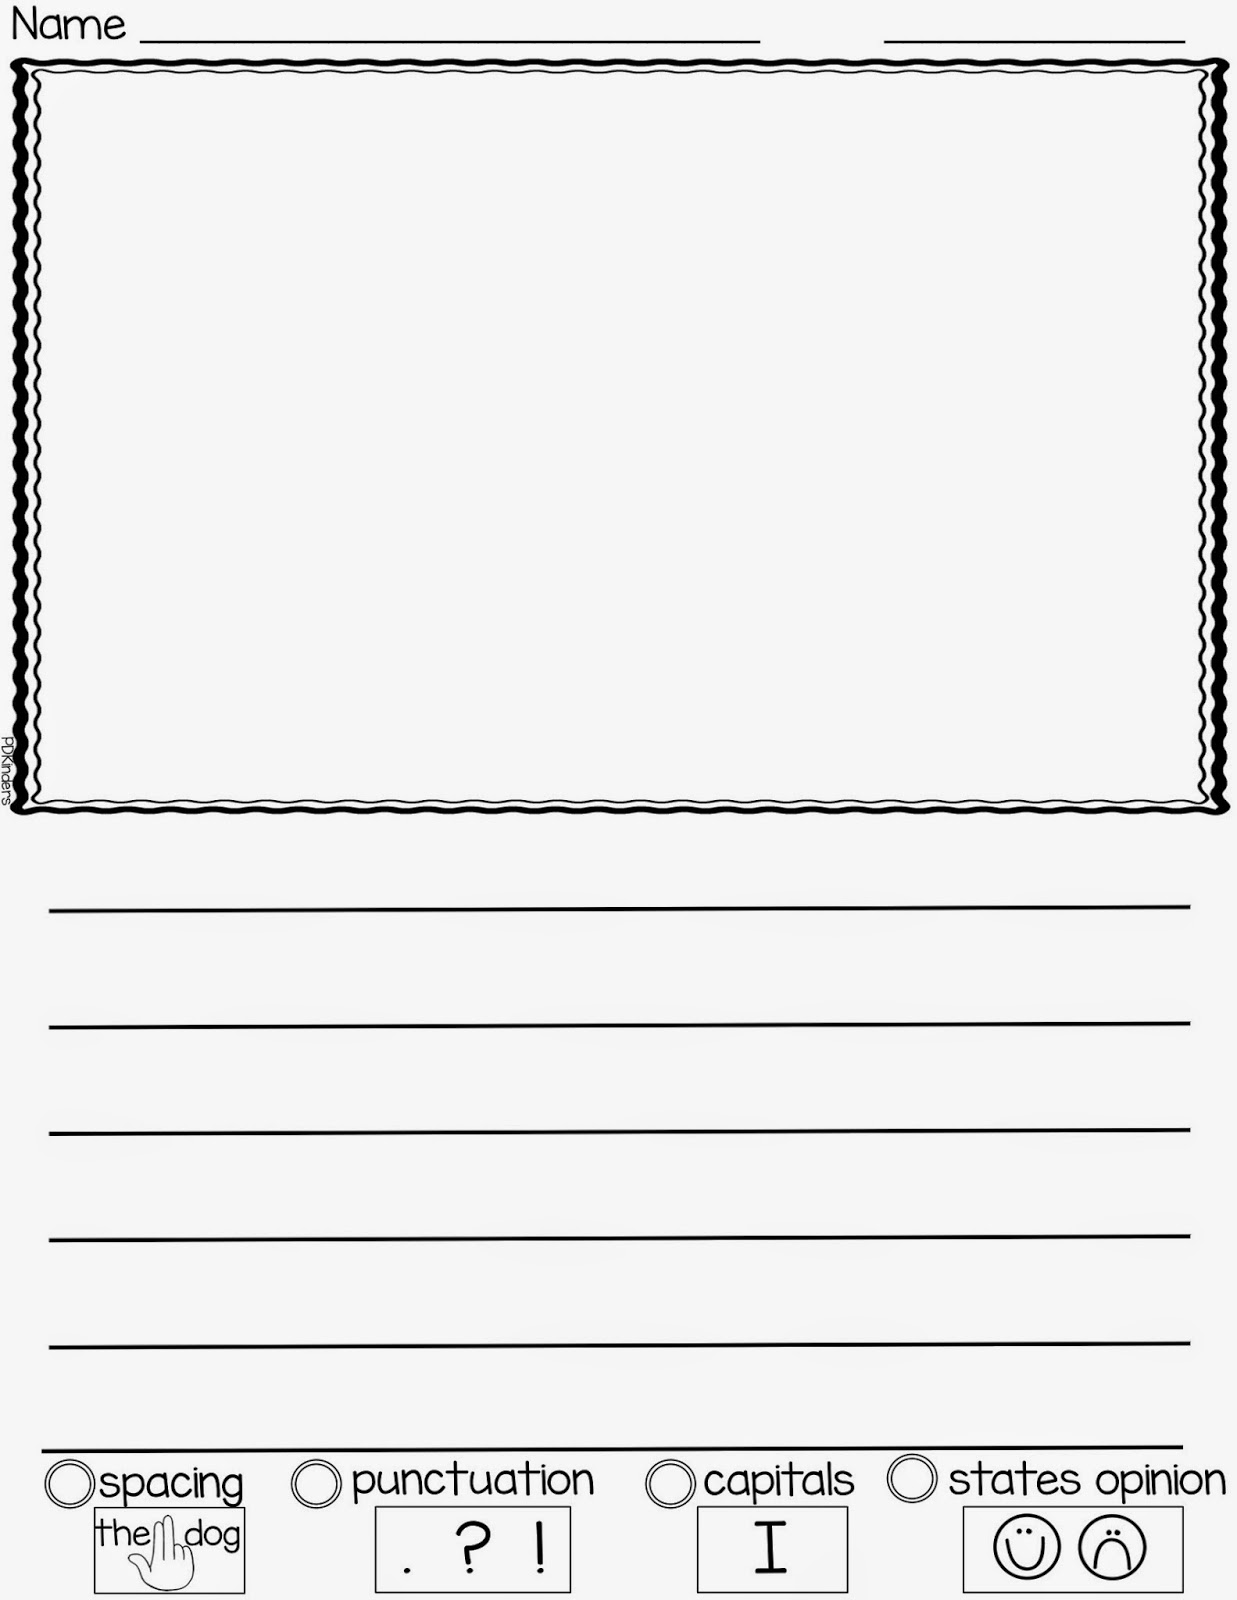 https://www.teacherspayteachers.com/Product/Kindergarten-Opinion-Writing-Paper-1782193